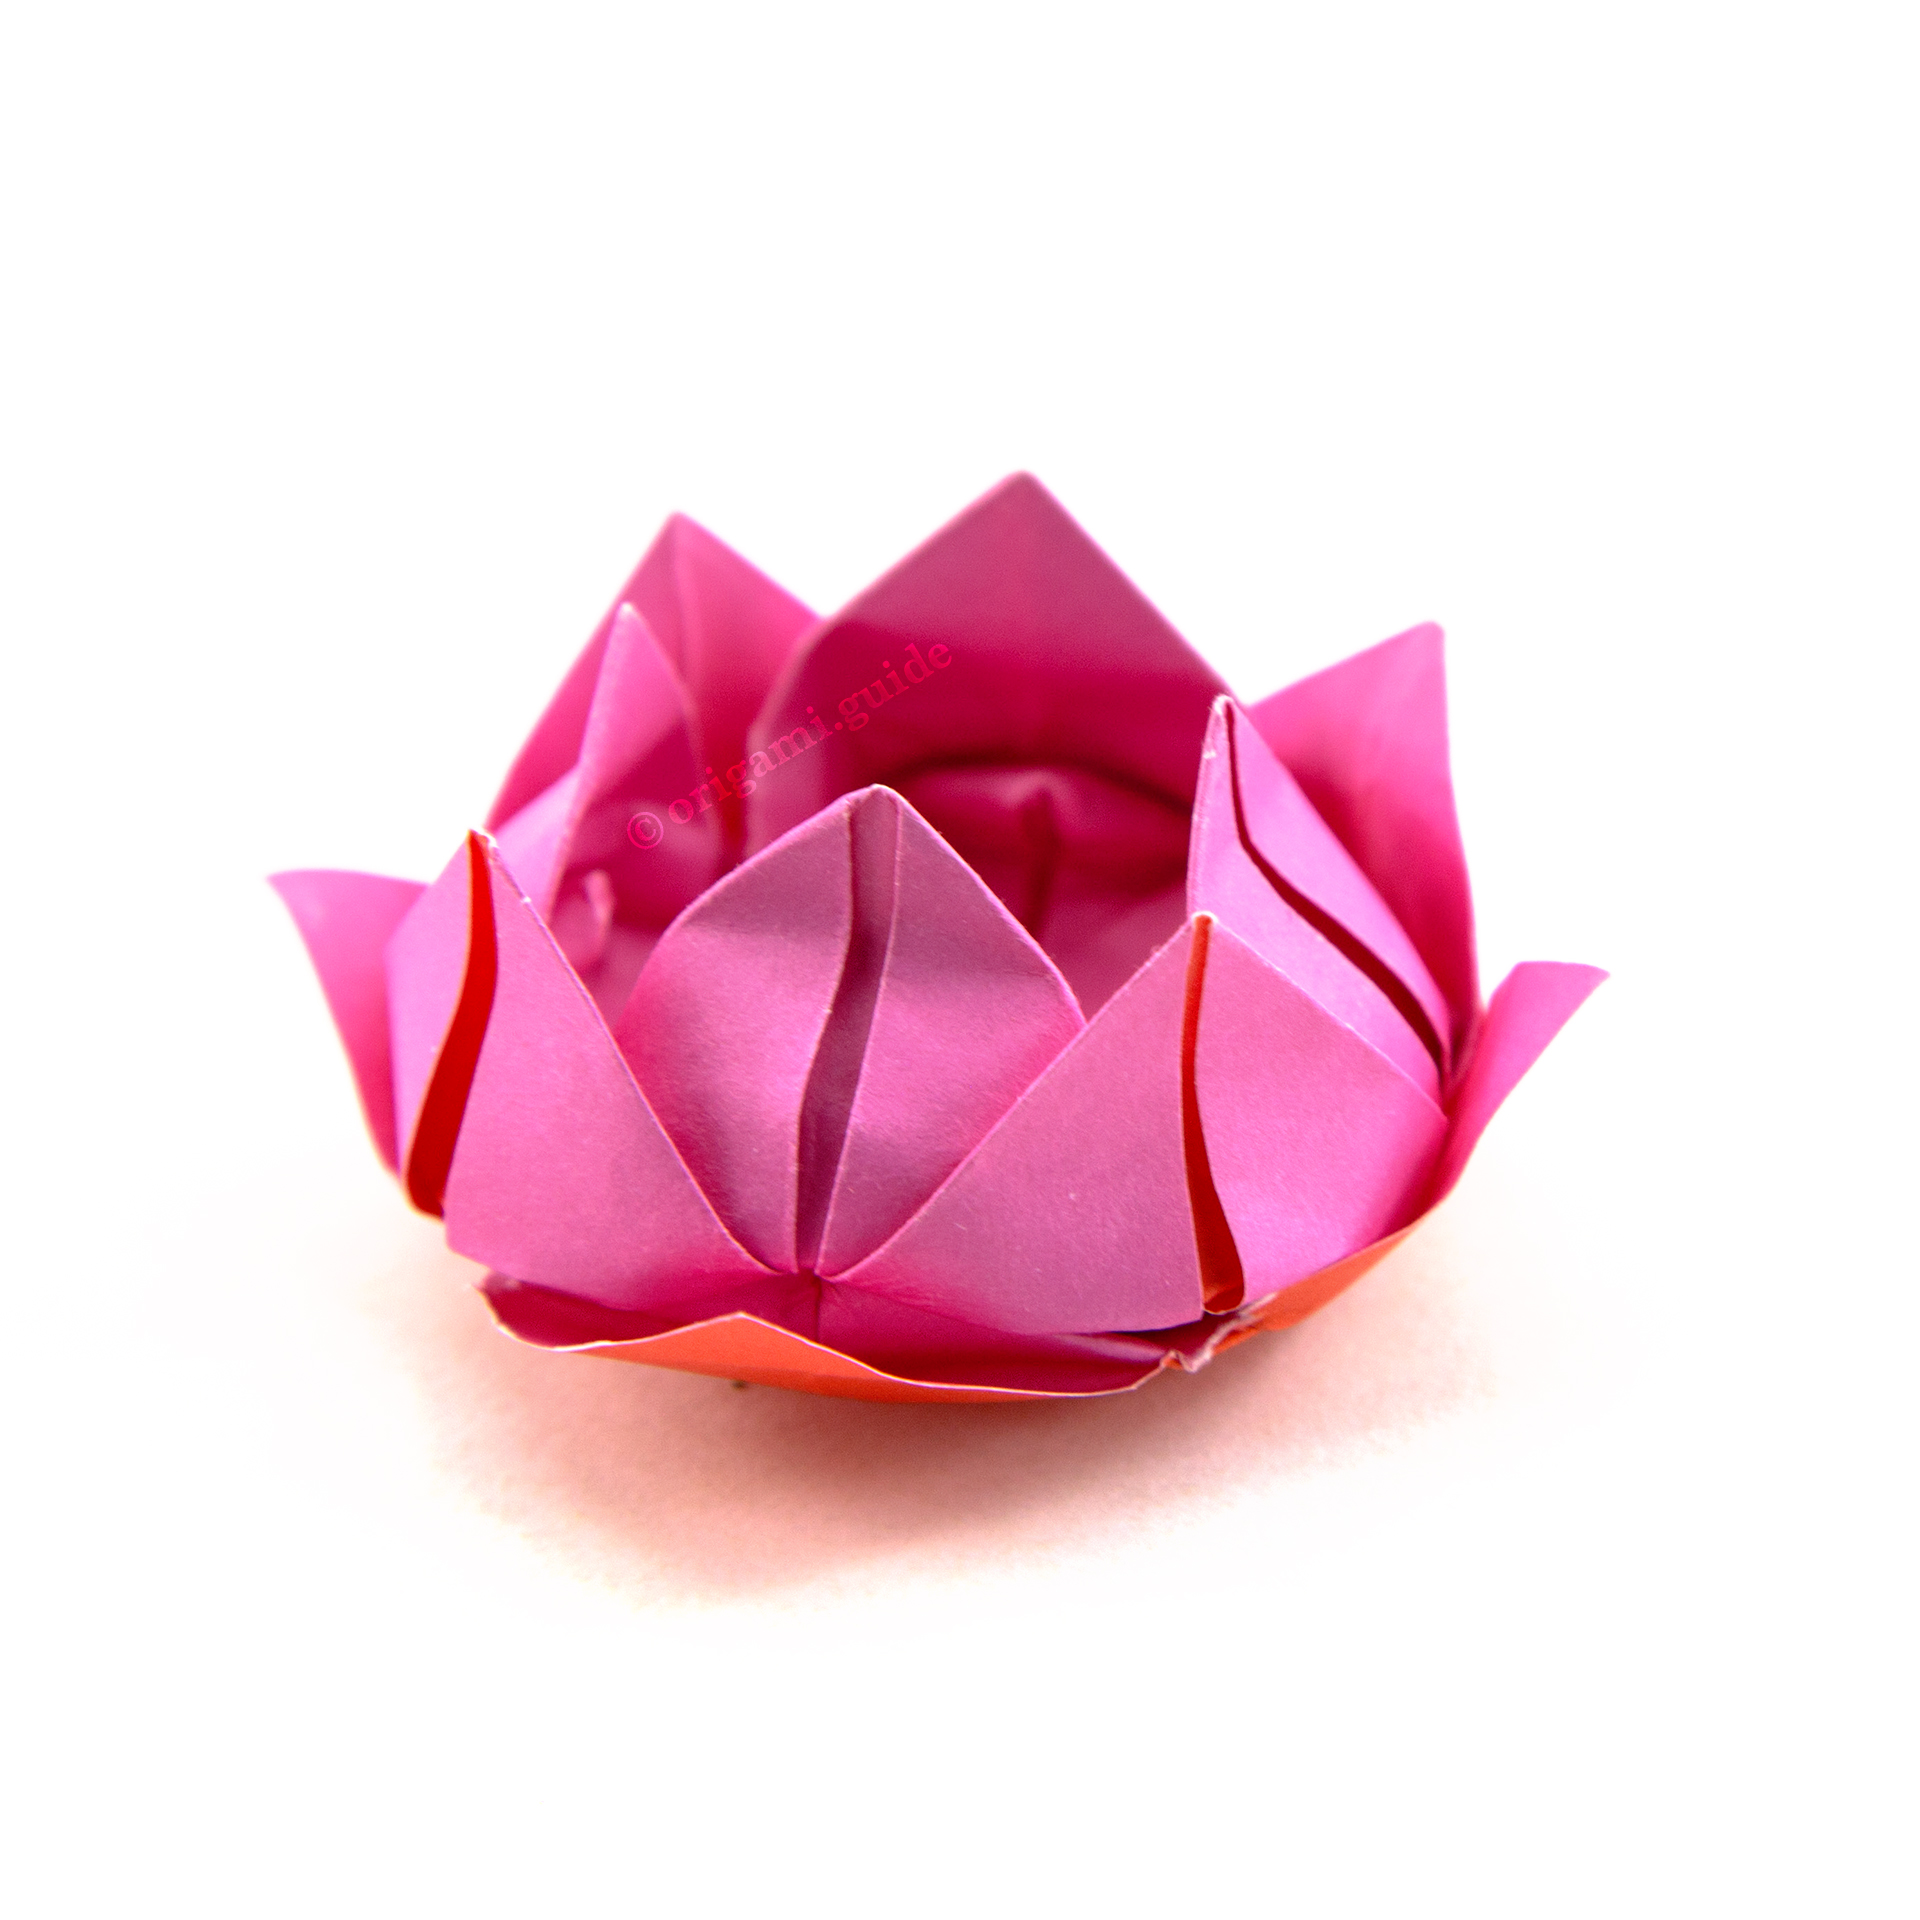 How To Make An Origami Lotus Flower - Folding Instructions